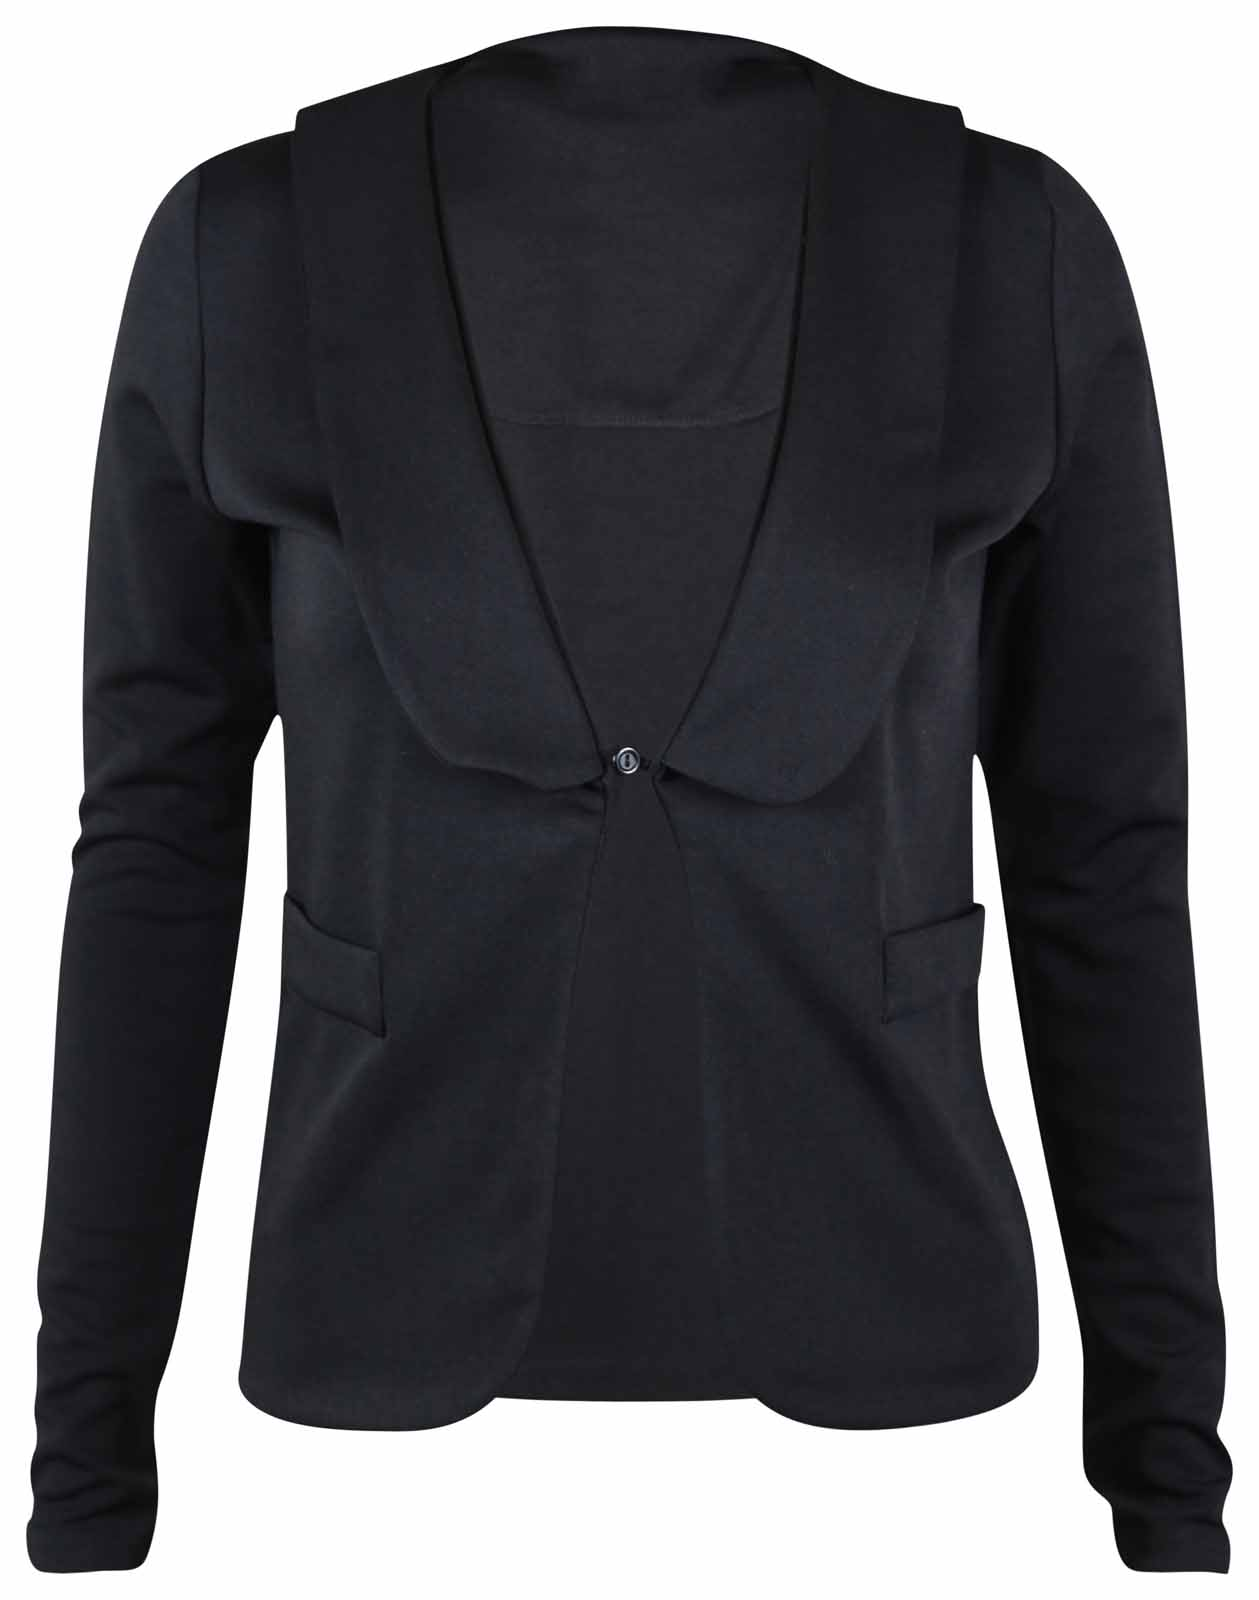 Discover jackets & coats on sale for women at ASOS. Shop the latest collection of jackets & coats for women on sale. your browser is not supported. To use ASOS, we recommend using the latest versions of Chrome, Firefox, Safari or Internet Explorer. Nike Colour Block Wind Breaker Jacket In Black.